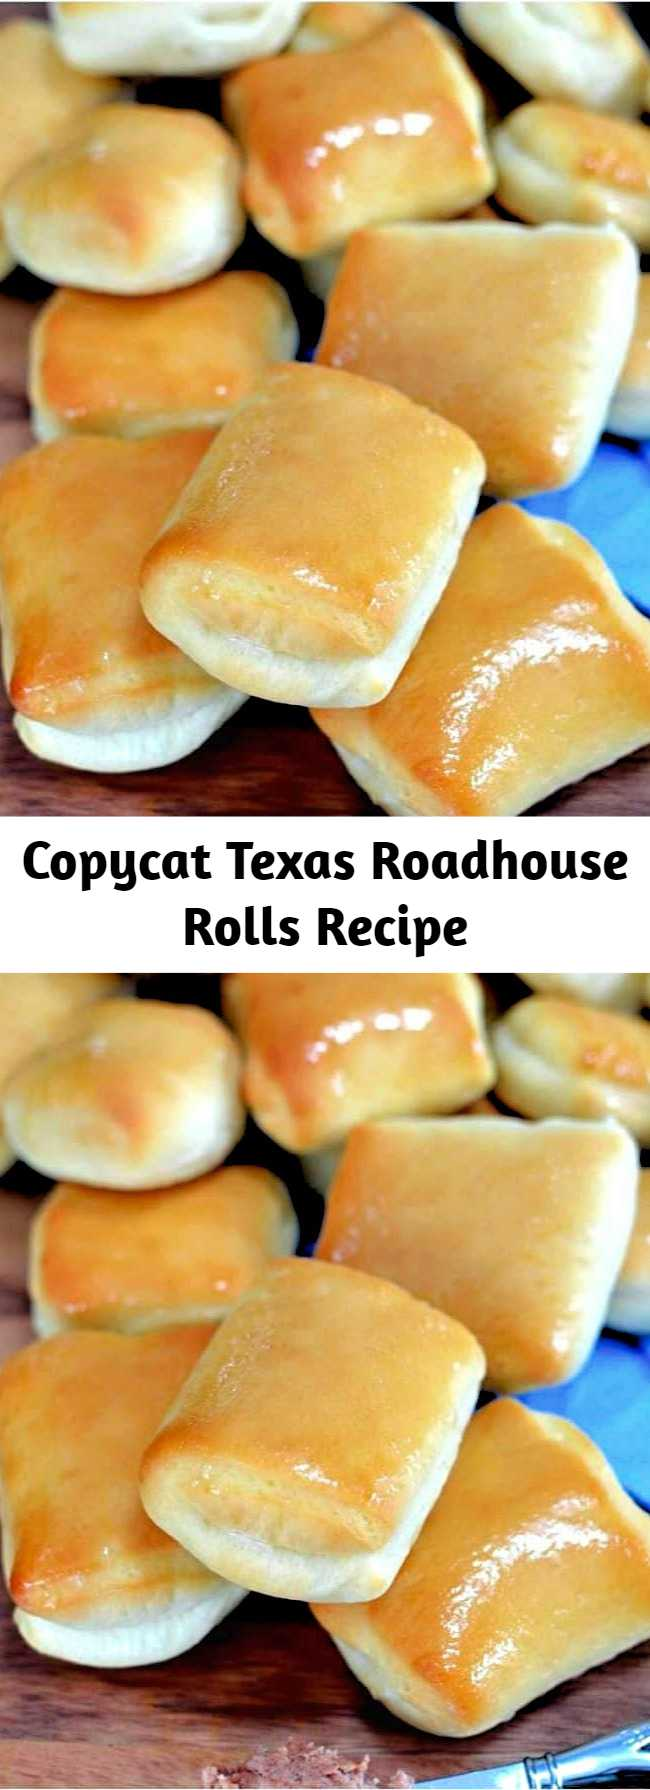 Copycat Texas Roadhouse Rolls Recipe - These Copycat Texas Roadhouse Rolls are brushed with sweet honey butter and can be made in a bread machine or by hand! A perfect side dish idea for holidays and family dinners! #rolls #easy #texasroadhouse #bread #sidedish #sides #copycatrecipes #copycatrecipe